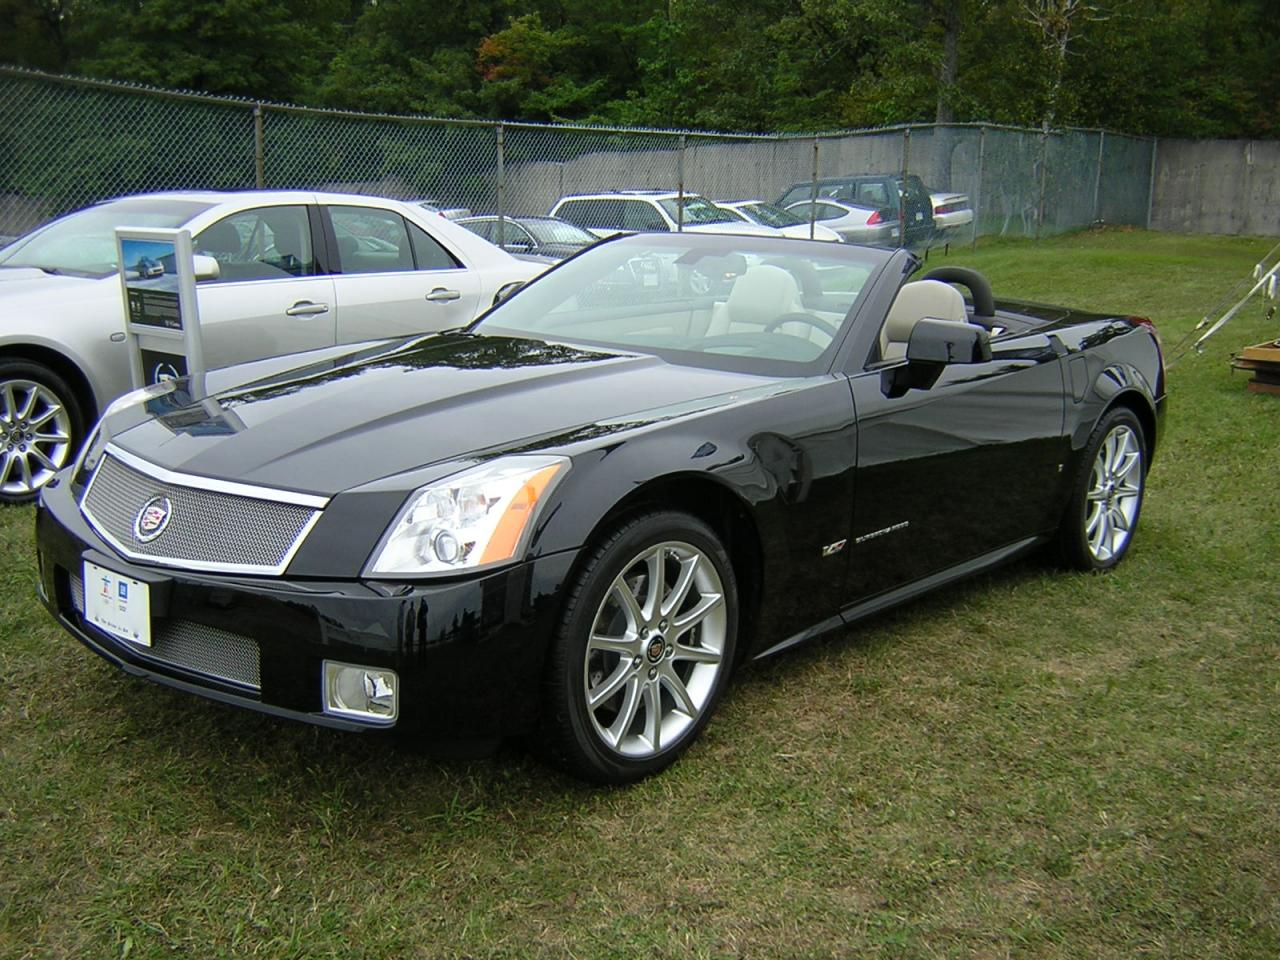 2007 cadillac xlr v information and photos zombiedrive. Black Bedroom Furniture Sets. Home Design Ideas